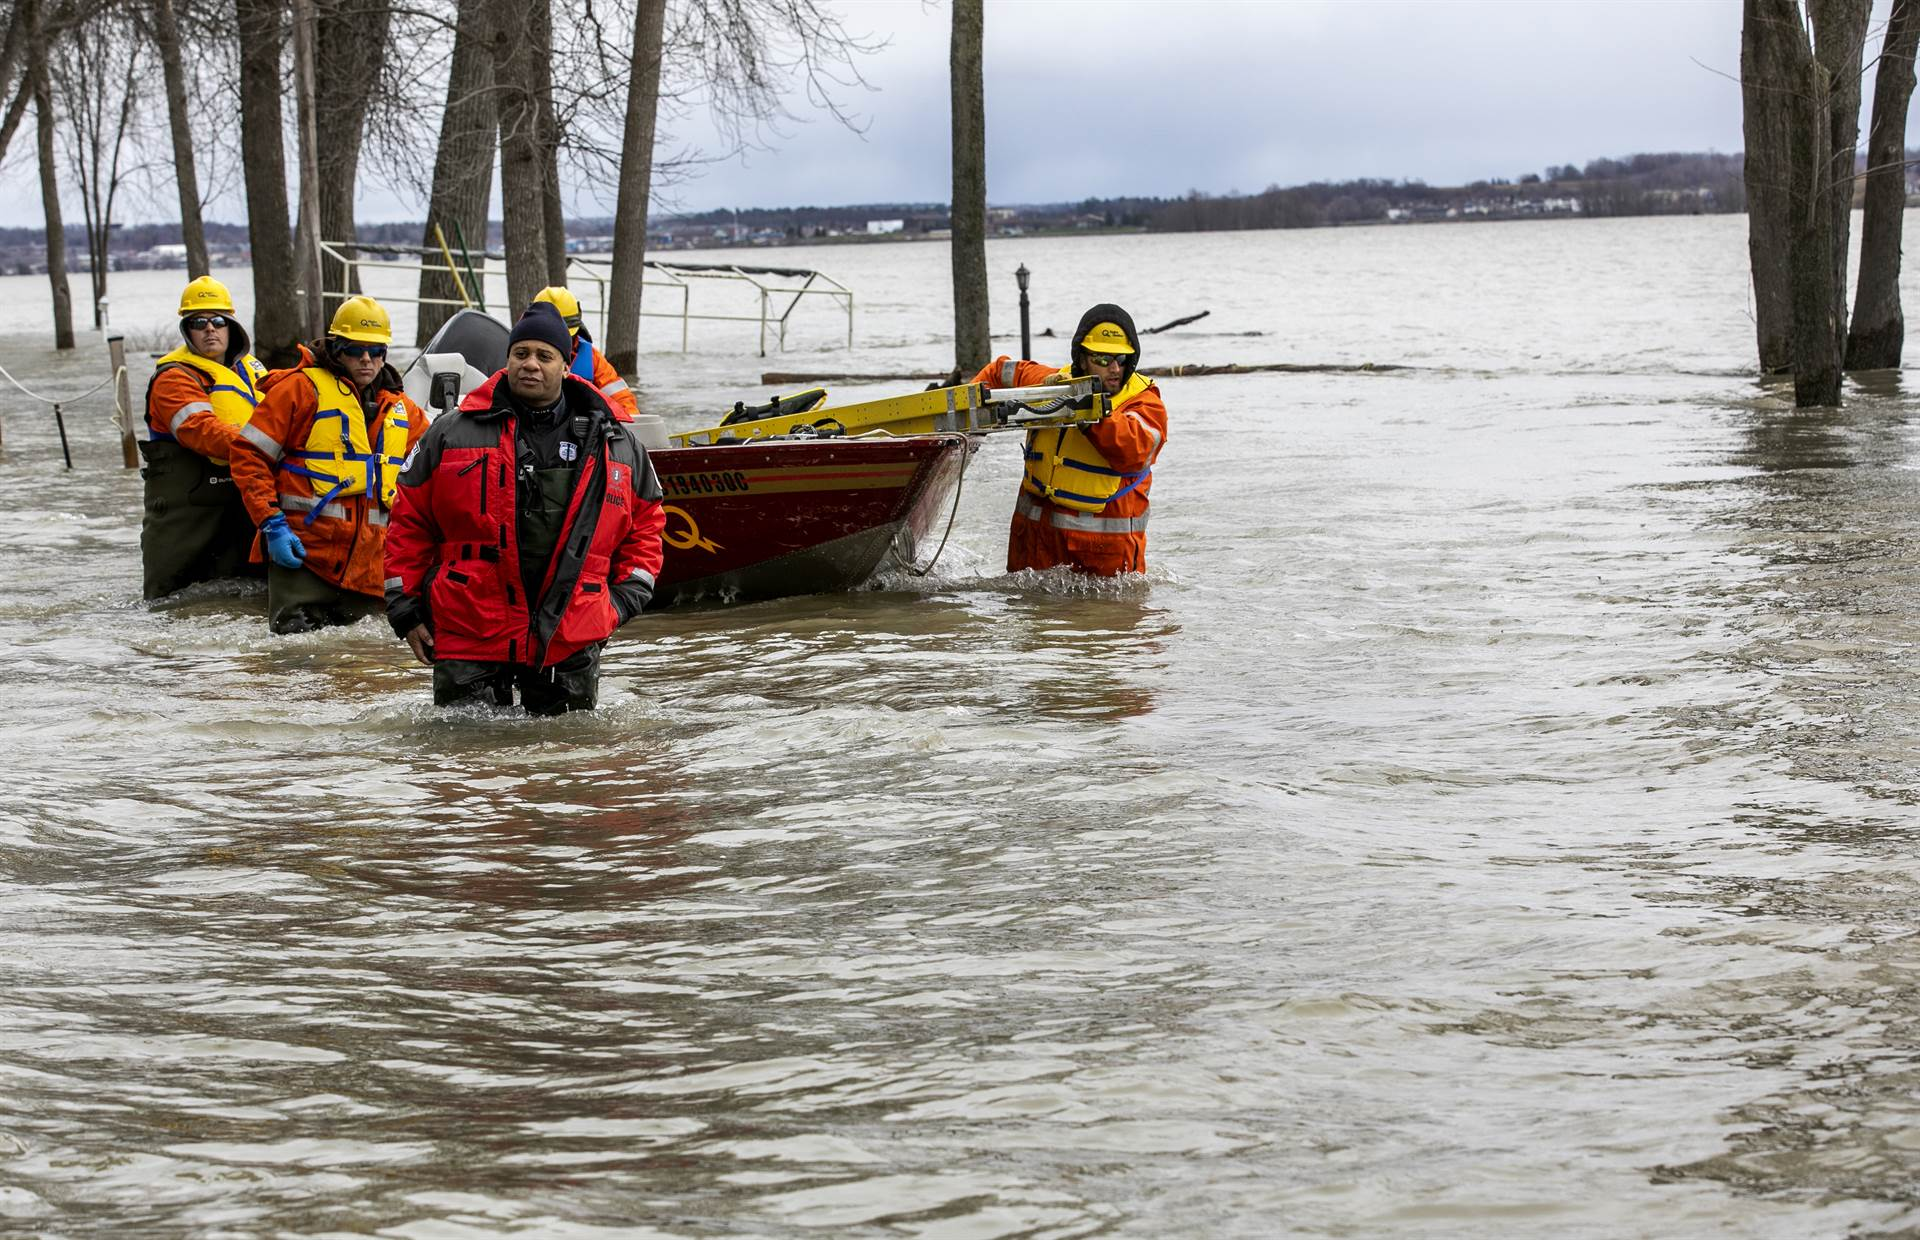 City of Gatineau looks to residents as it plans for next wave of floods - OttawaMatters.com